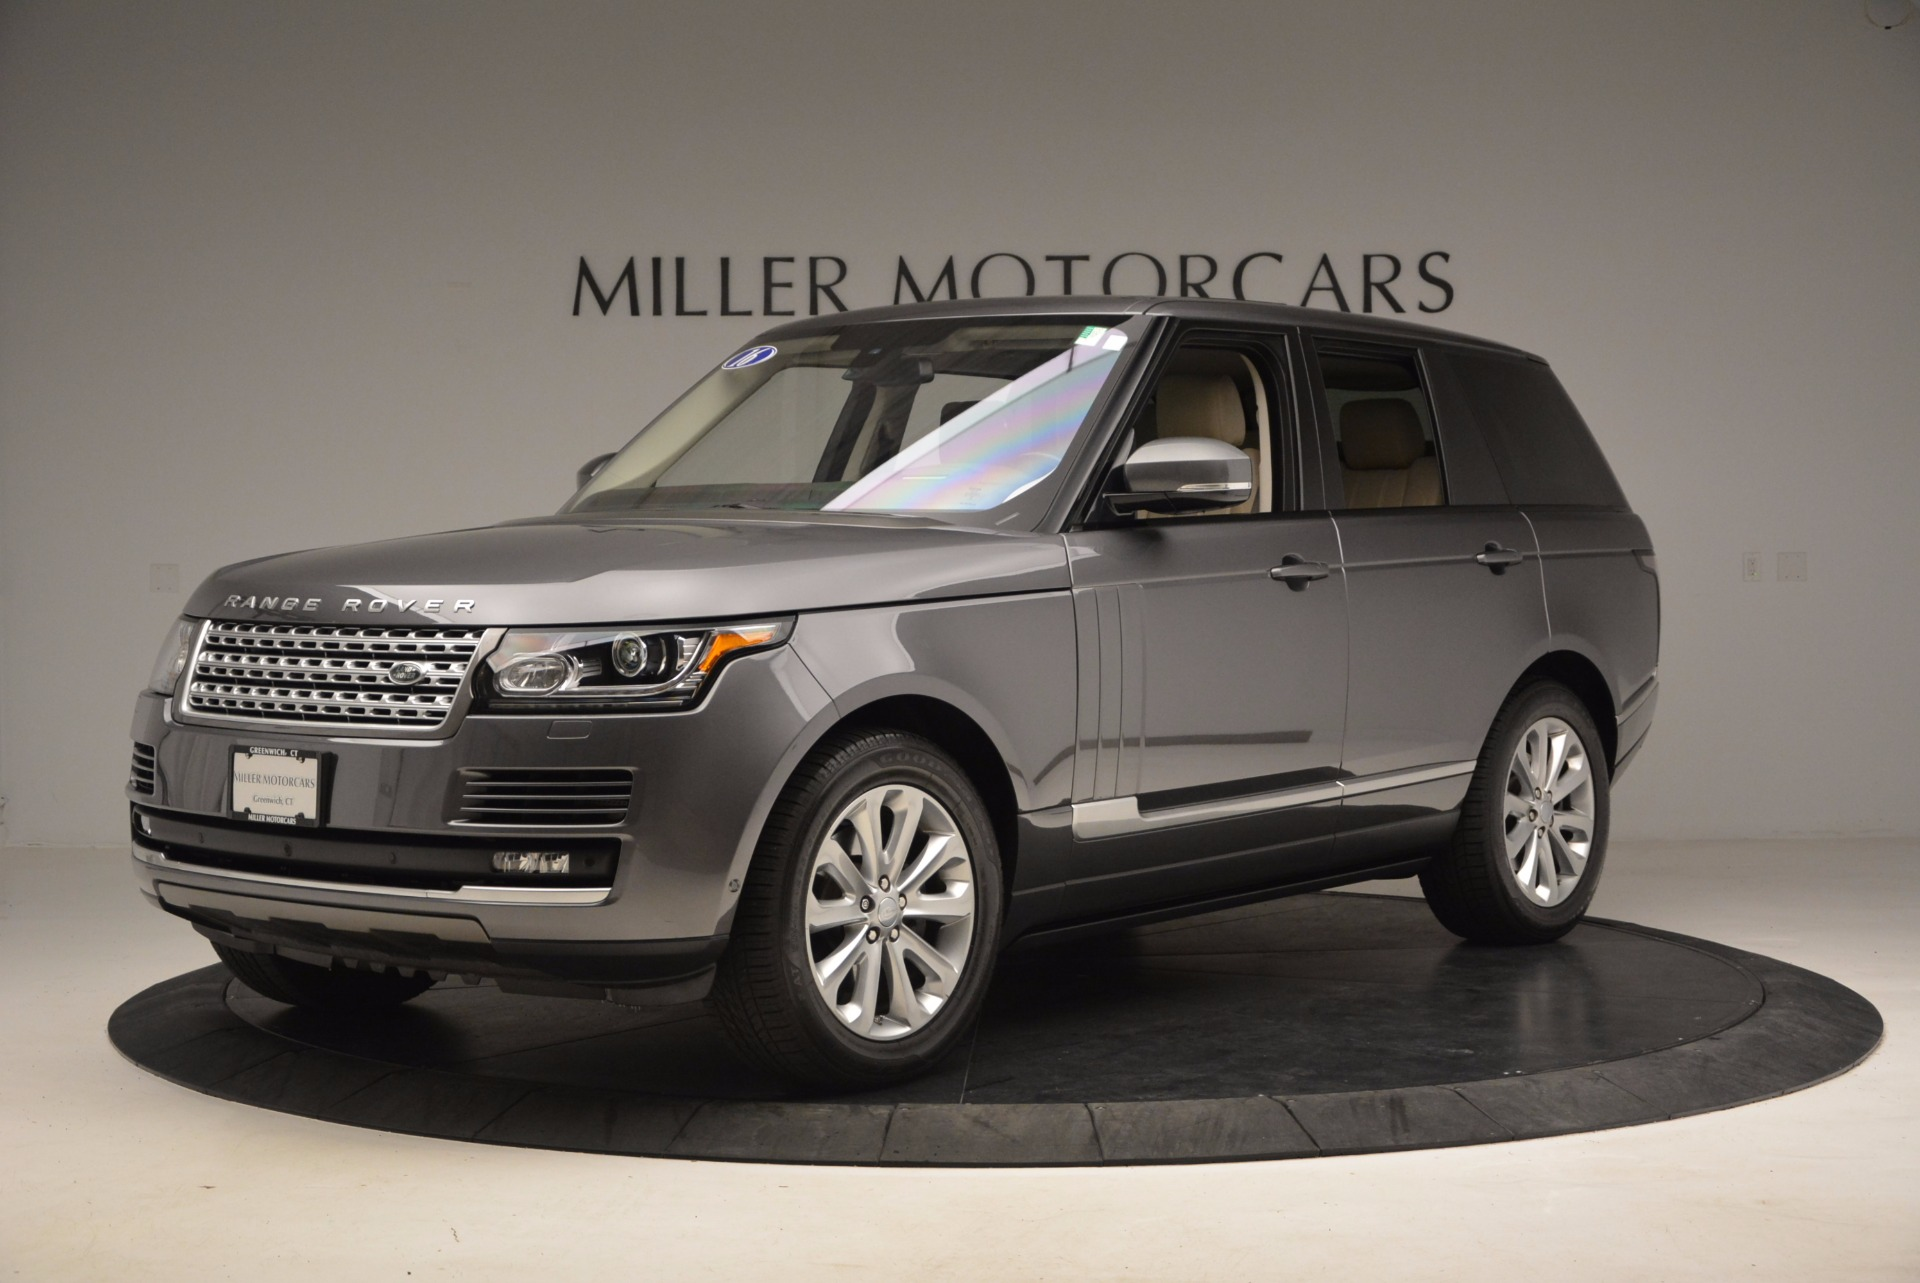 Used 2016 Land Rover Range Rover HSE TD6 For Sale In Greenwich, CT 999_p2